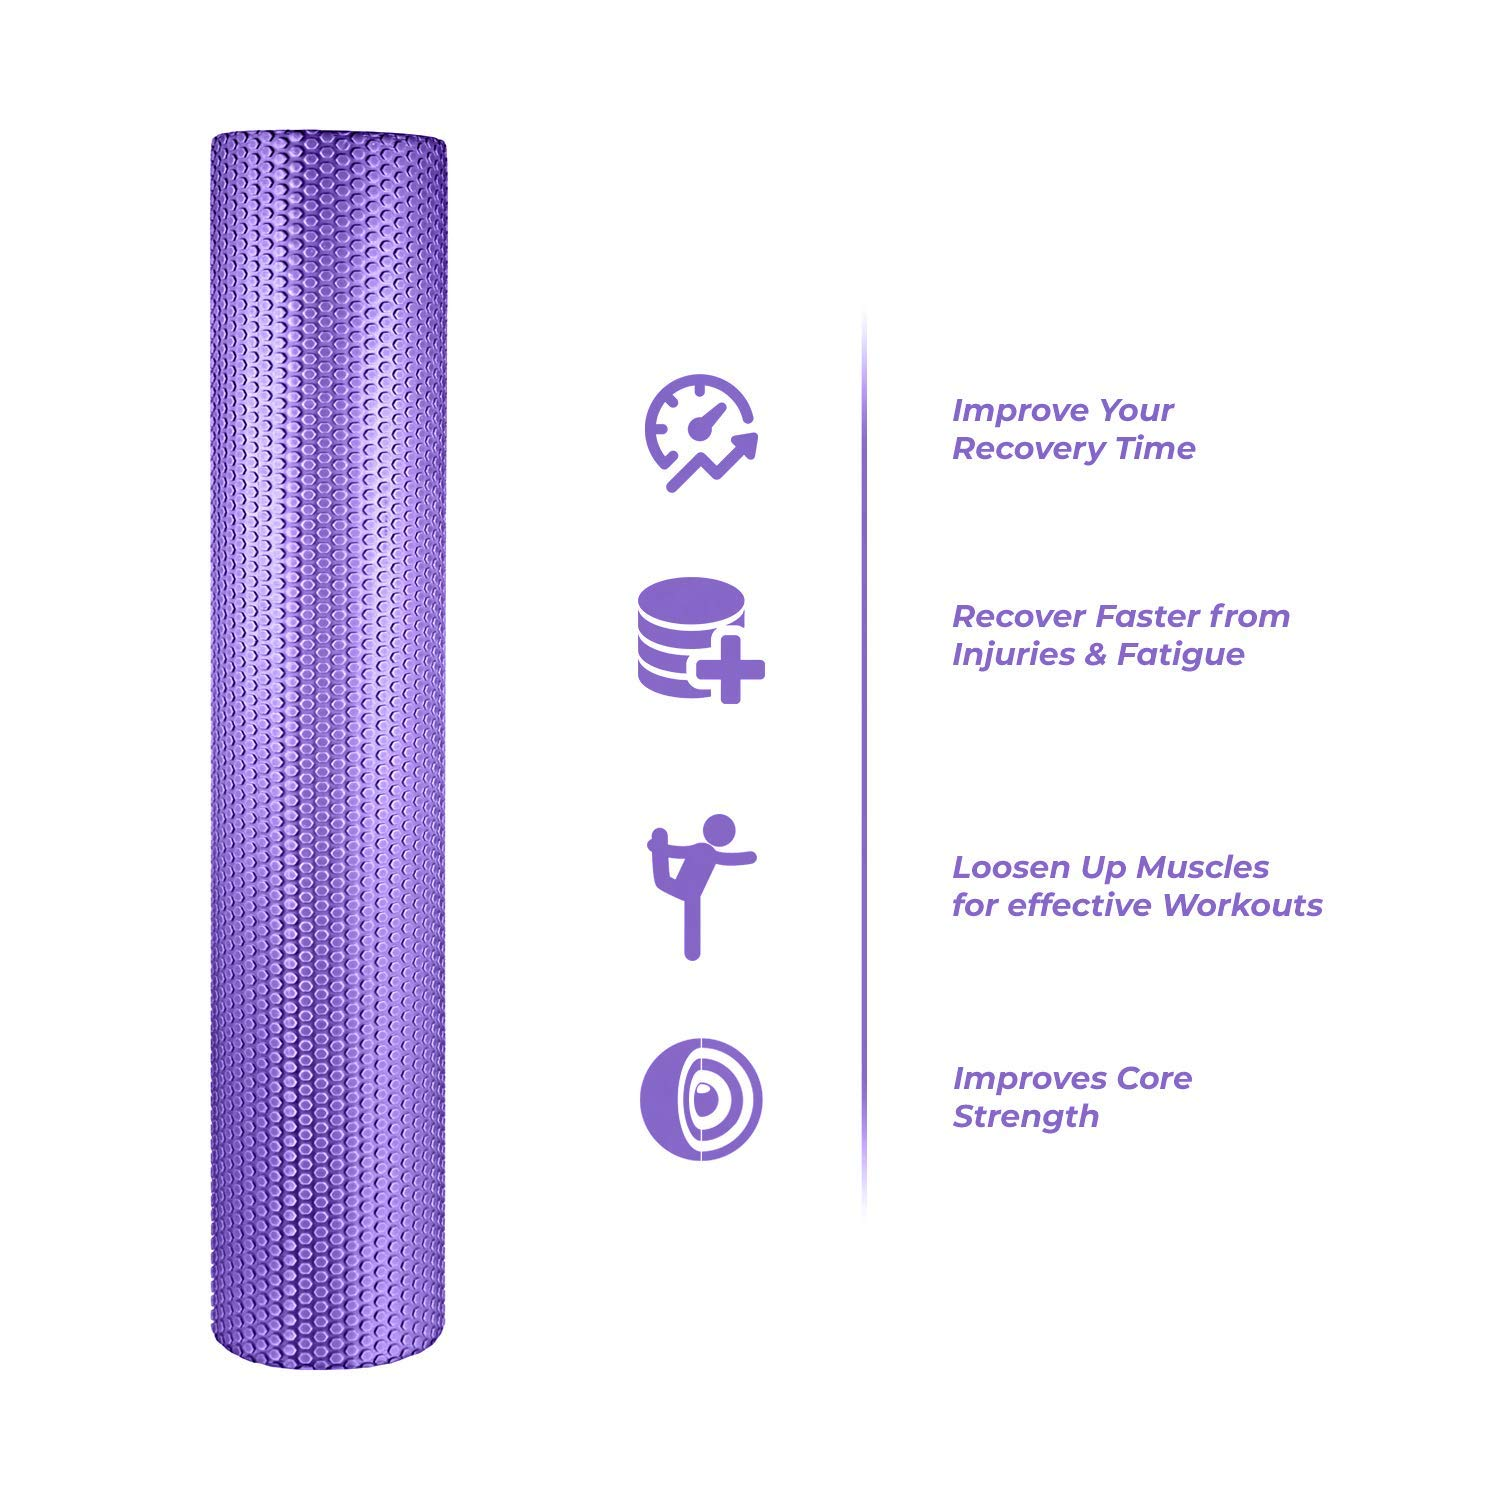 spinway Yoga Foam Roller Speckled Foam Rollers for Muscles Extra Firm High Density for Physical Therapy Exercise Deep Tissue Muscle Massage (Puple) by spinway (Image #2)